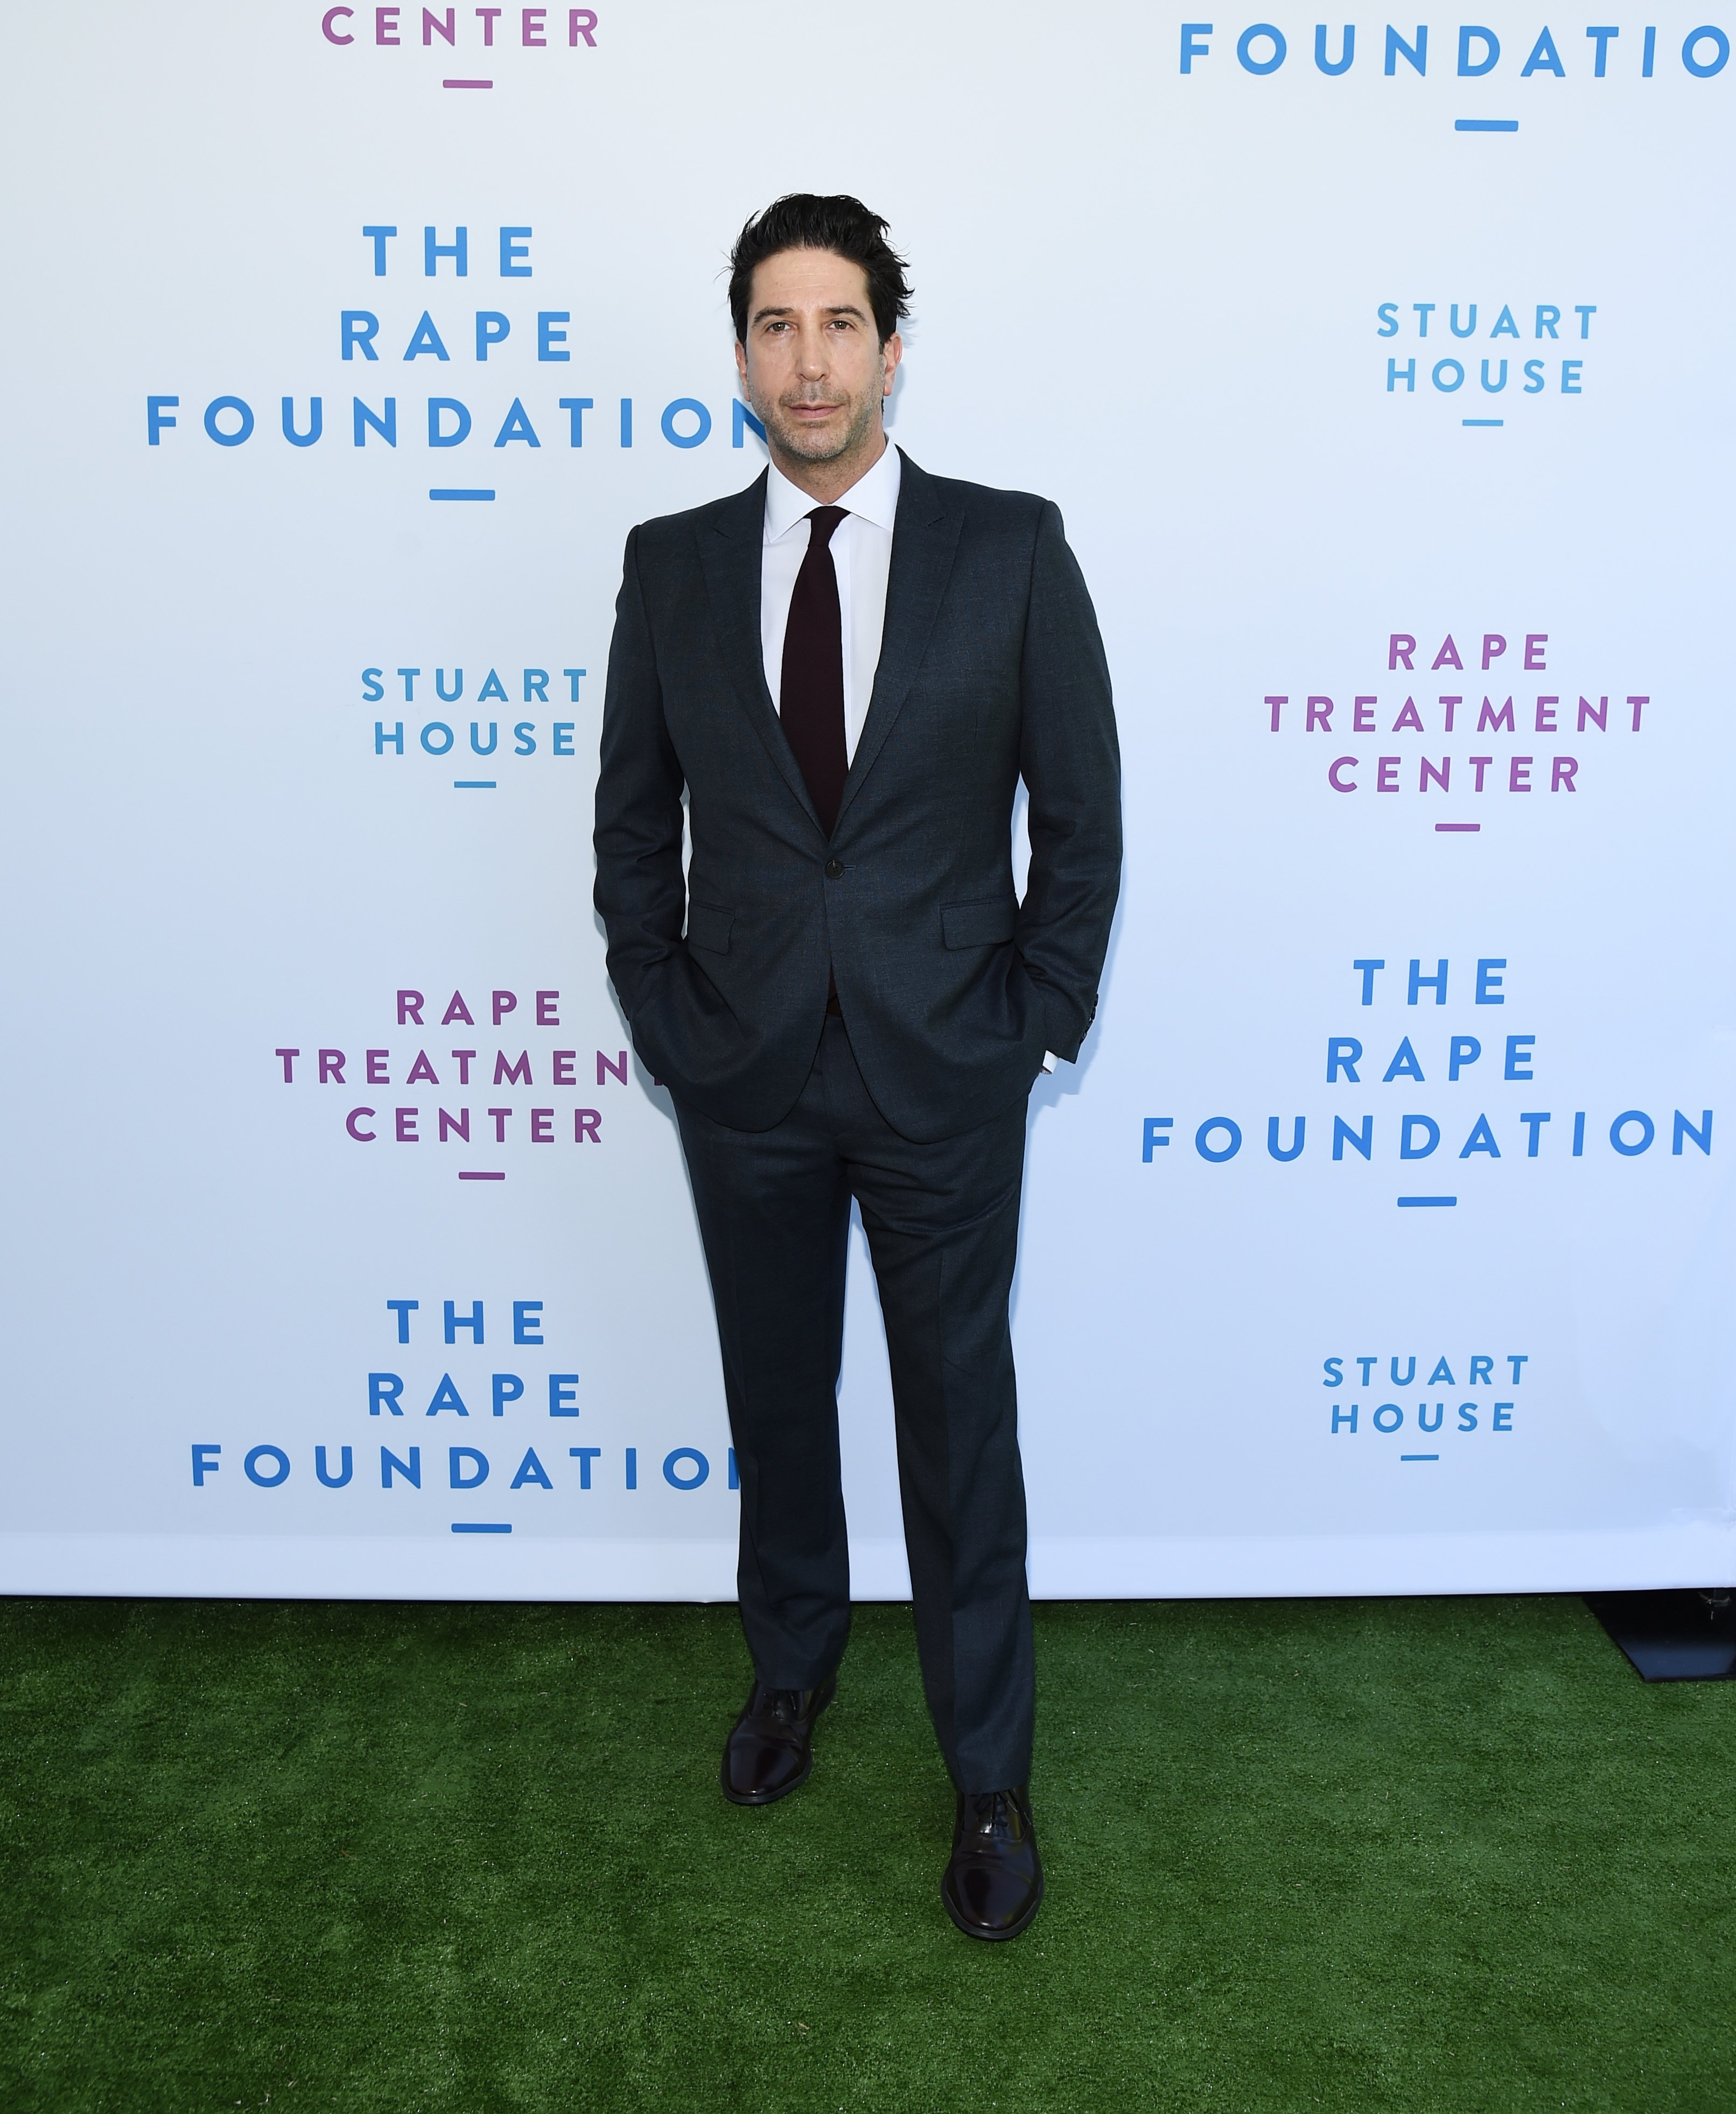 David Schwimmer at The Rape Foundation's 2019 Annual Brunch Benefiting Rape Treatment Center and Stuart House |Photo: Getty Images